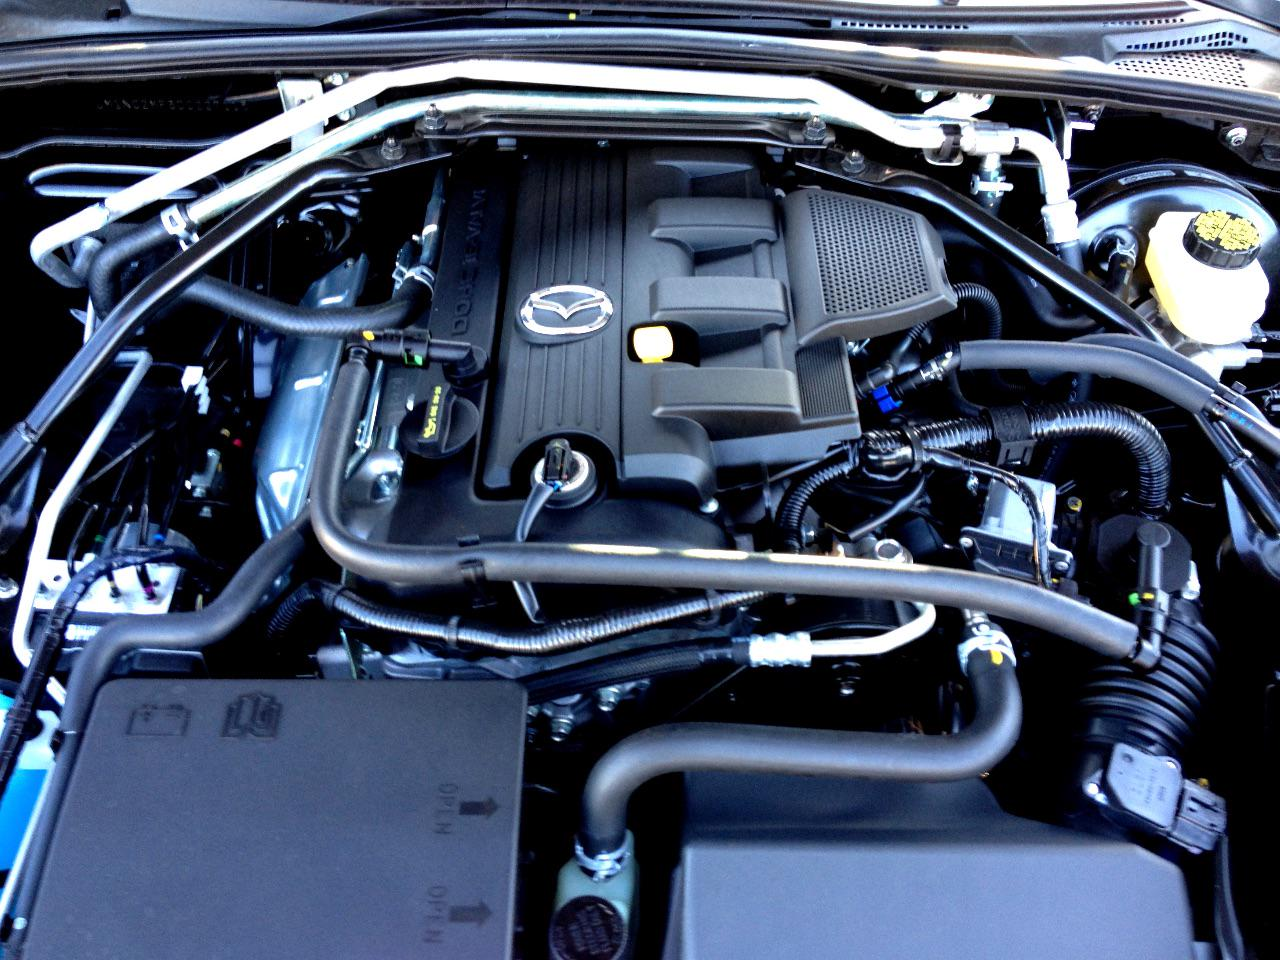 2013 Mazda MX-5 - Engine